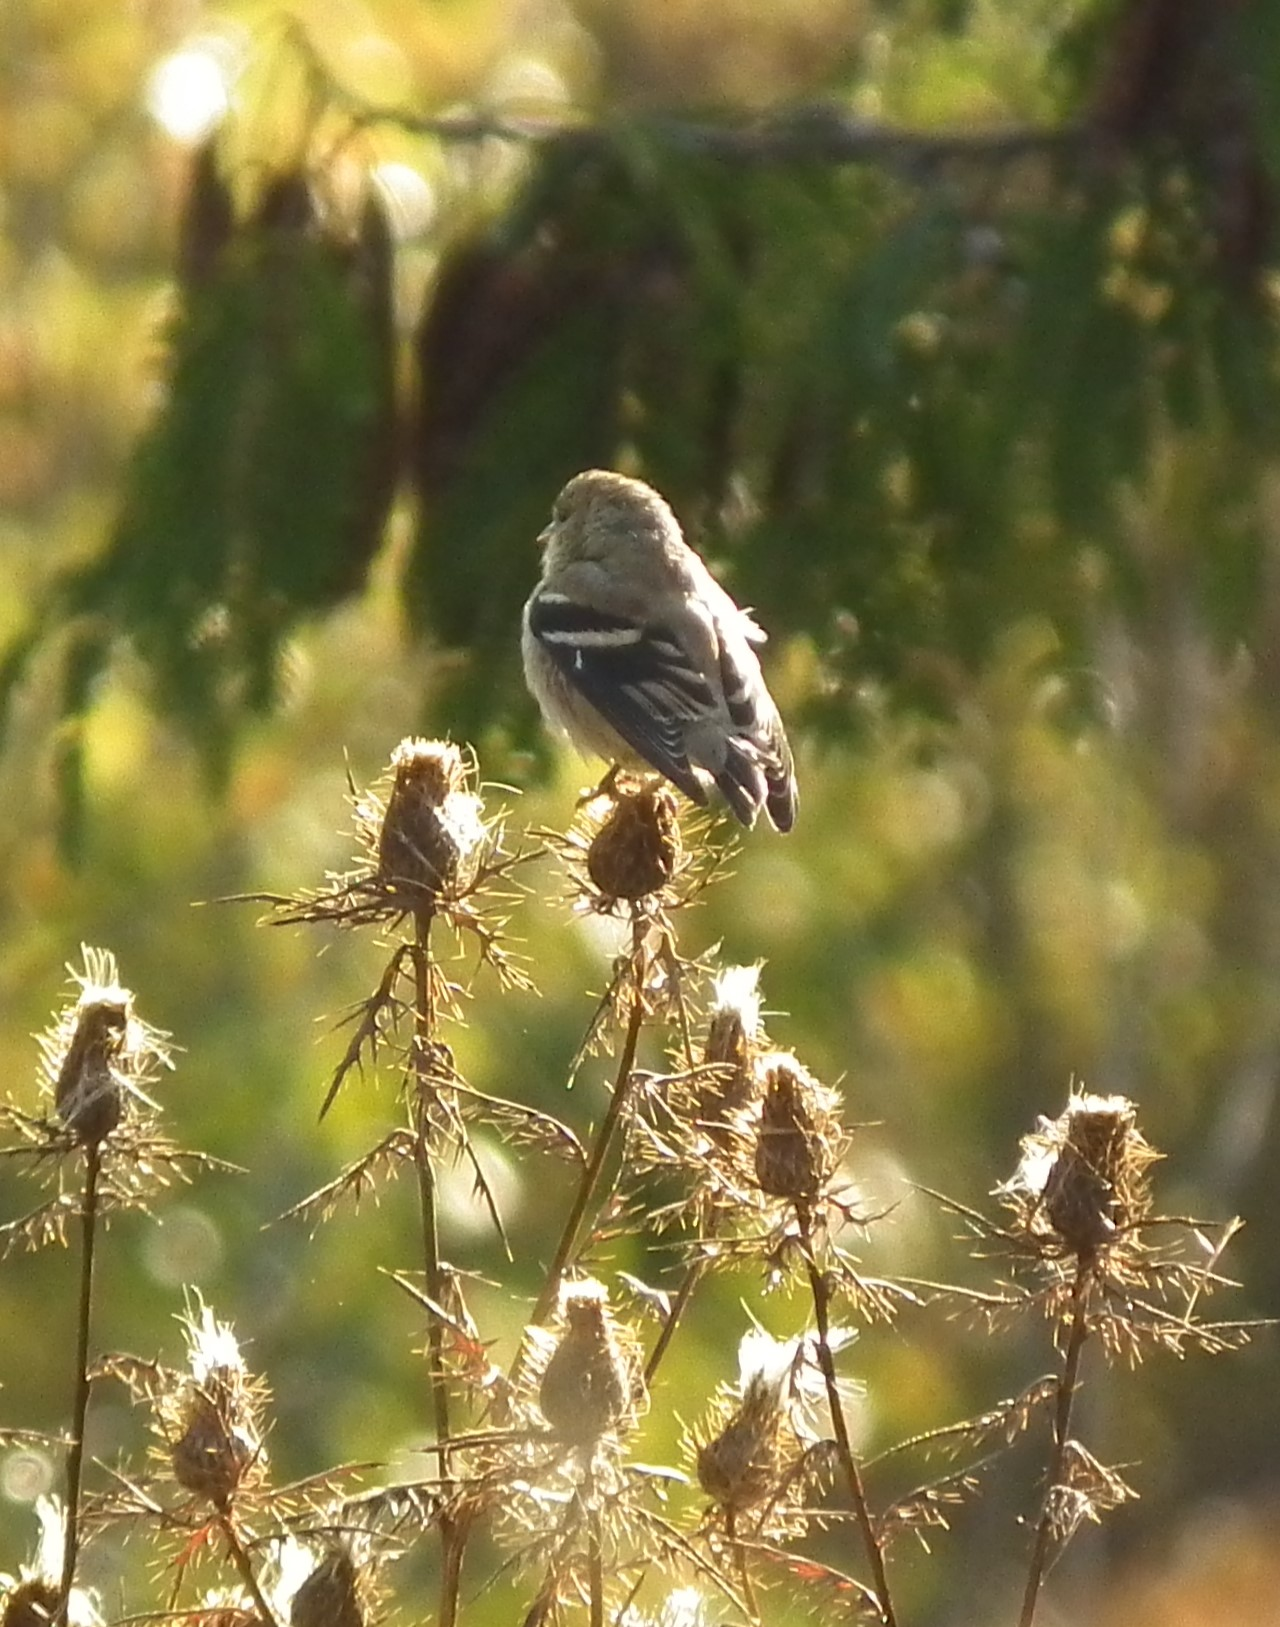 goldfinch perched on thistle seedheads